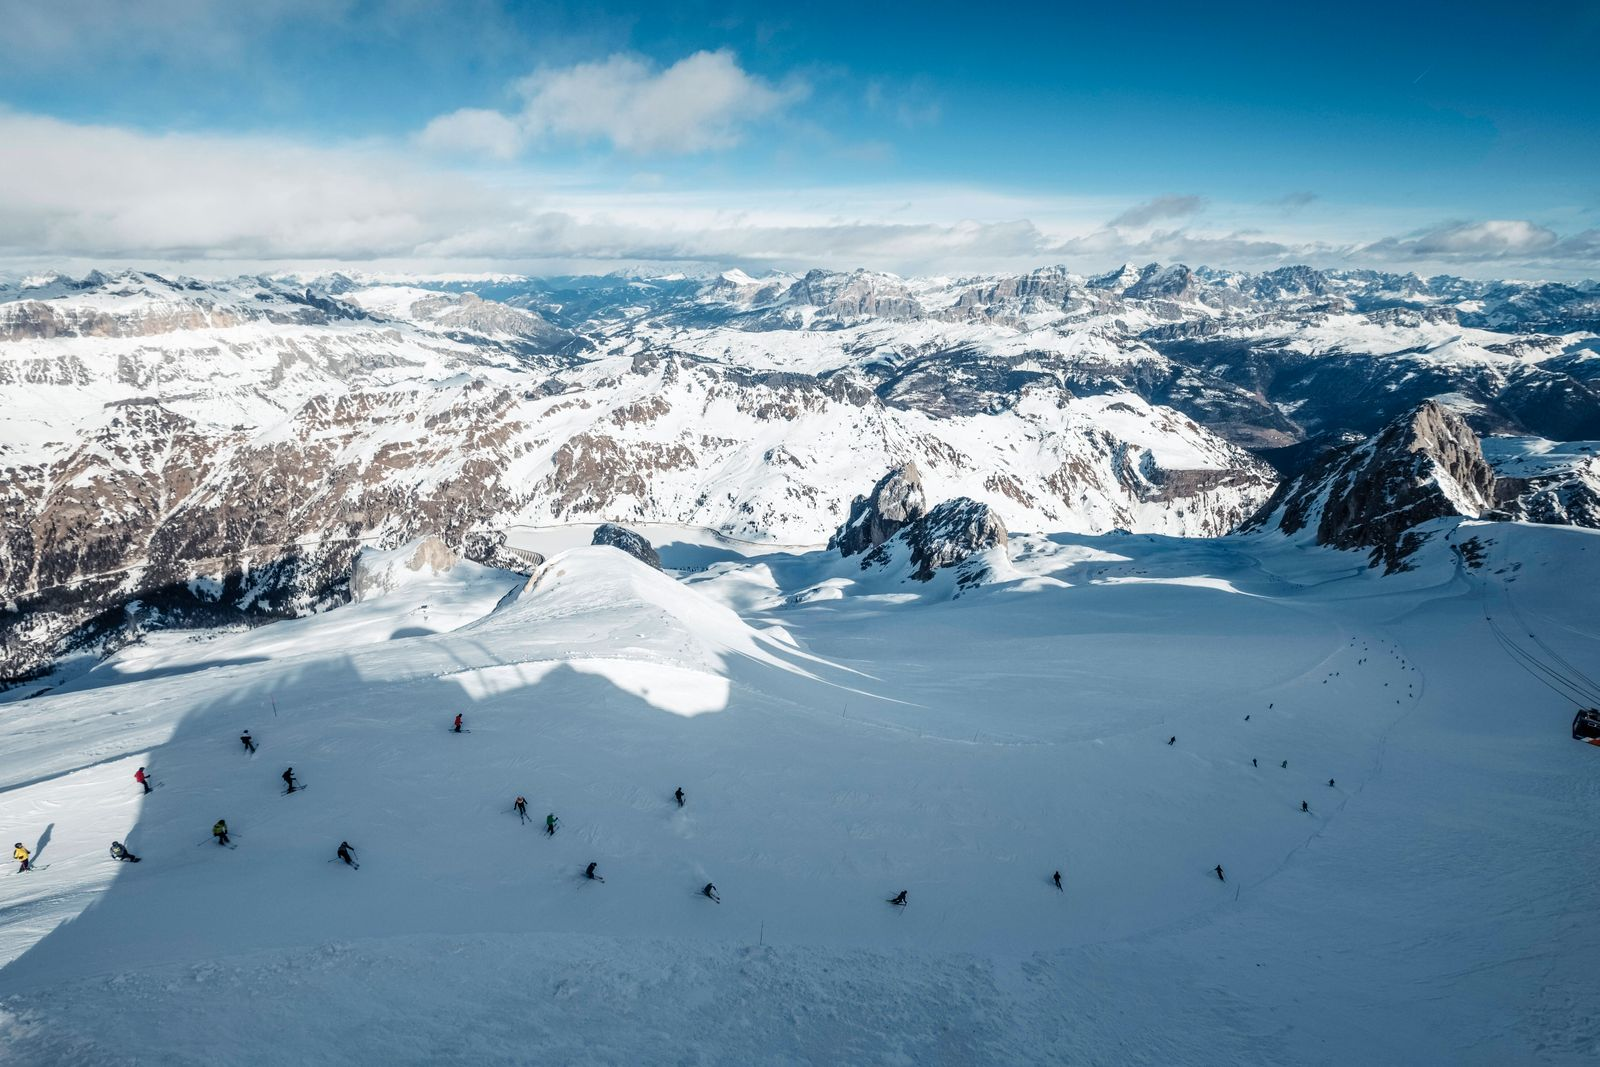 Italy, Trentino, Skiers seen from summit of Marmolada mountain WFF00447